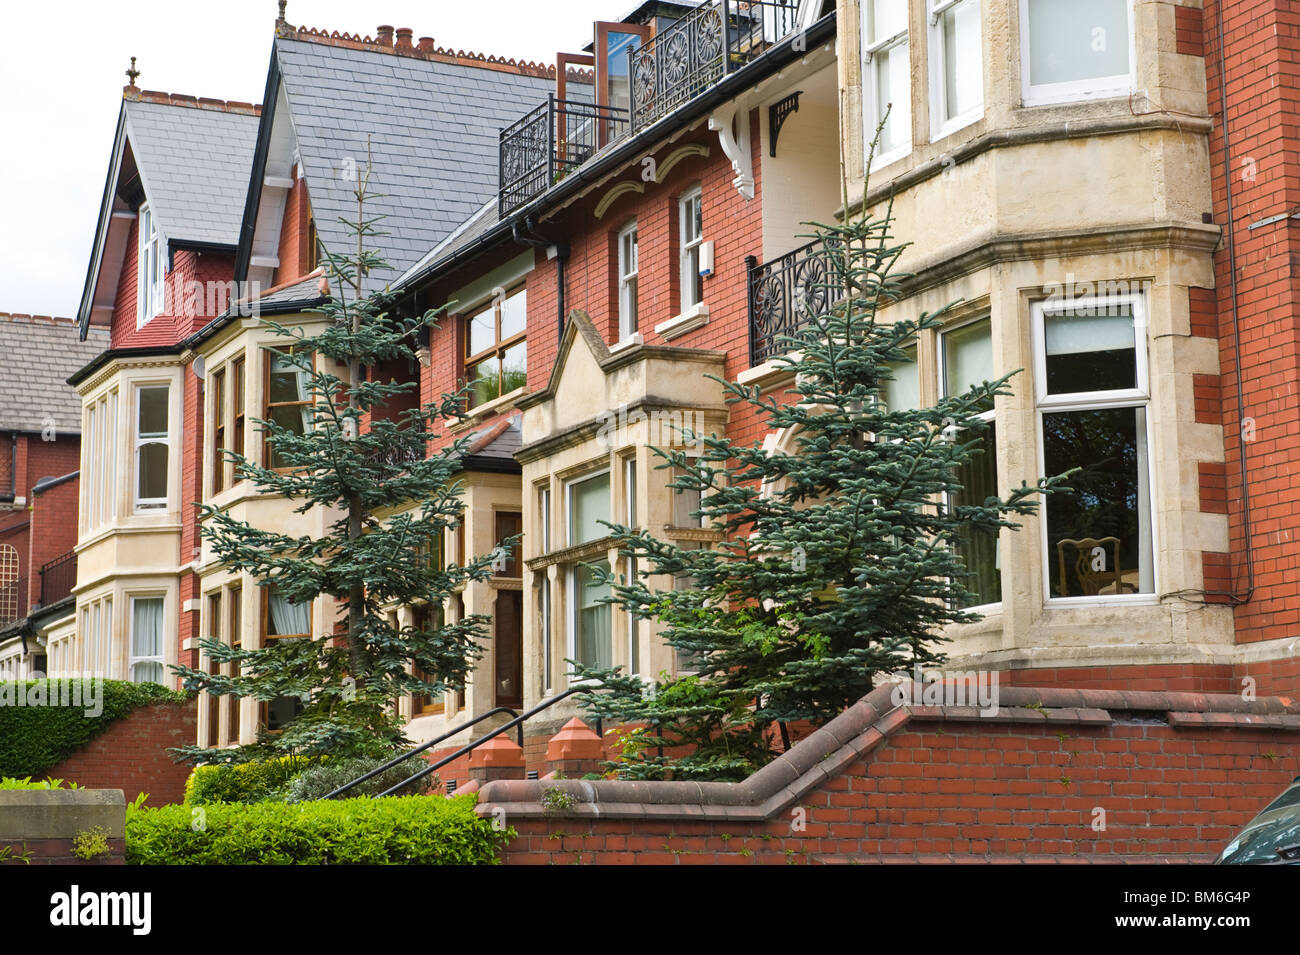 Large Edwardian early 20th century houses in Cardiff South Wales UK - Stock Image